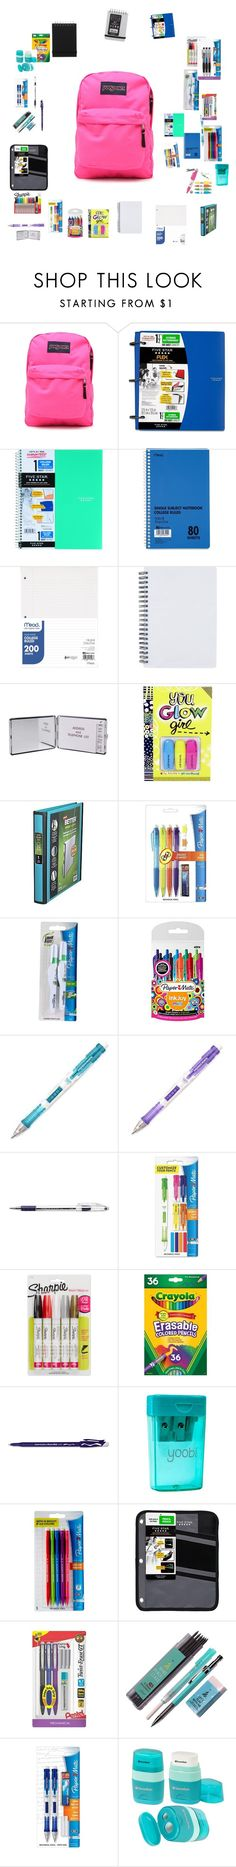 """""""Untitled #546"""" by gina143 ❤ liked on Polyvore featuring JanSport, Mead, Paper Mate, Pentel, Sharpie and Yoobi"""